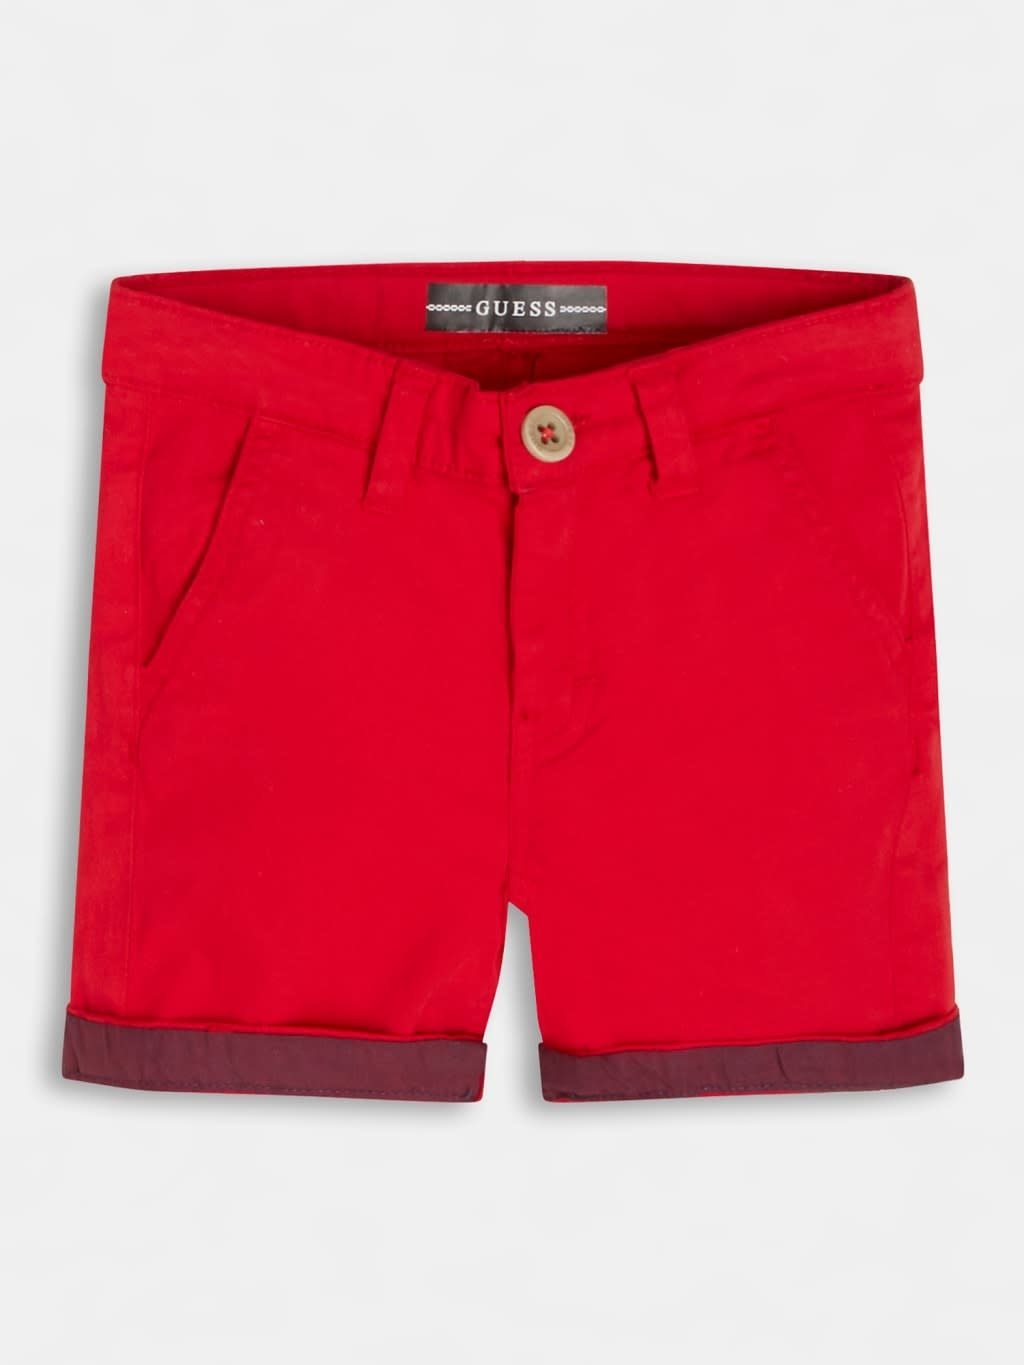 Guess Guess Regular Fit Chino Short Red S21